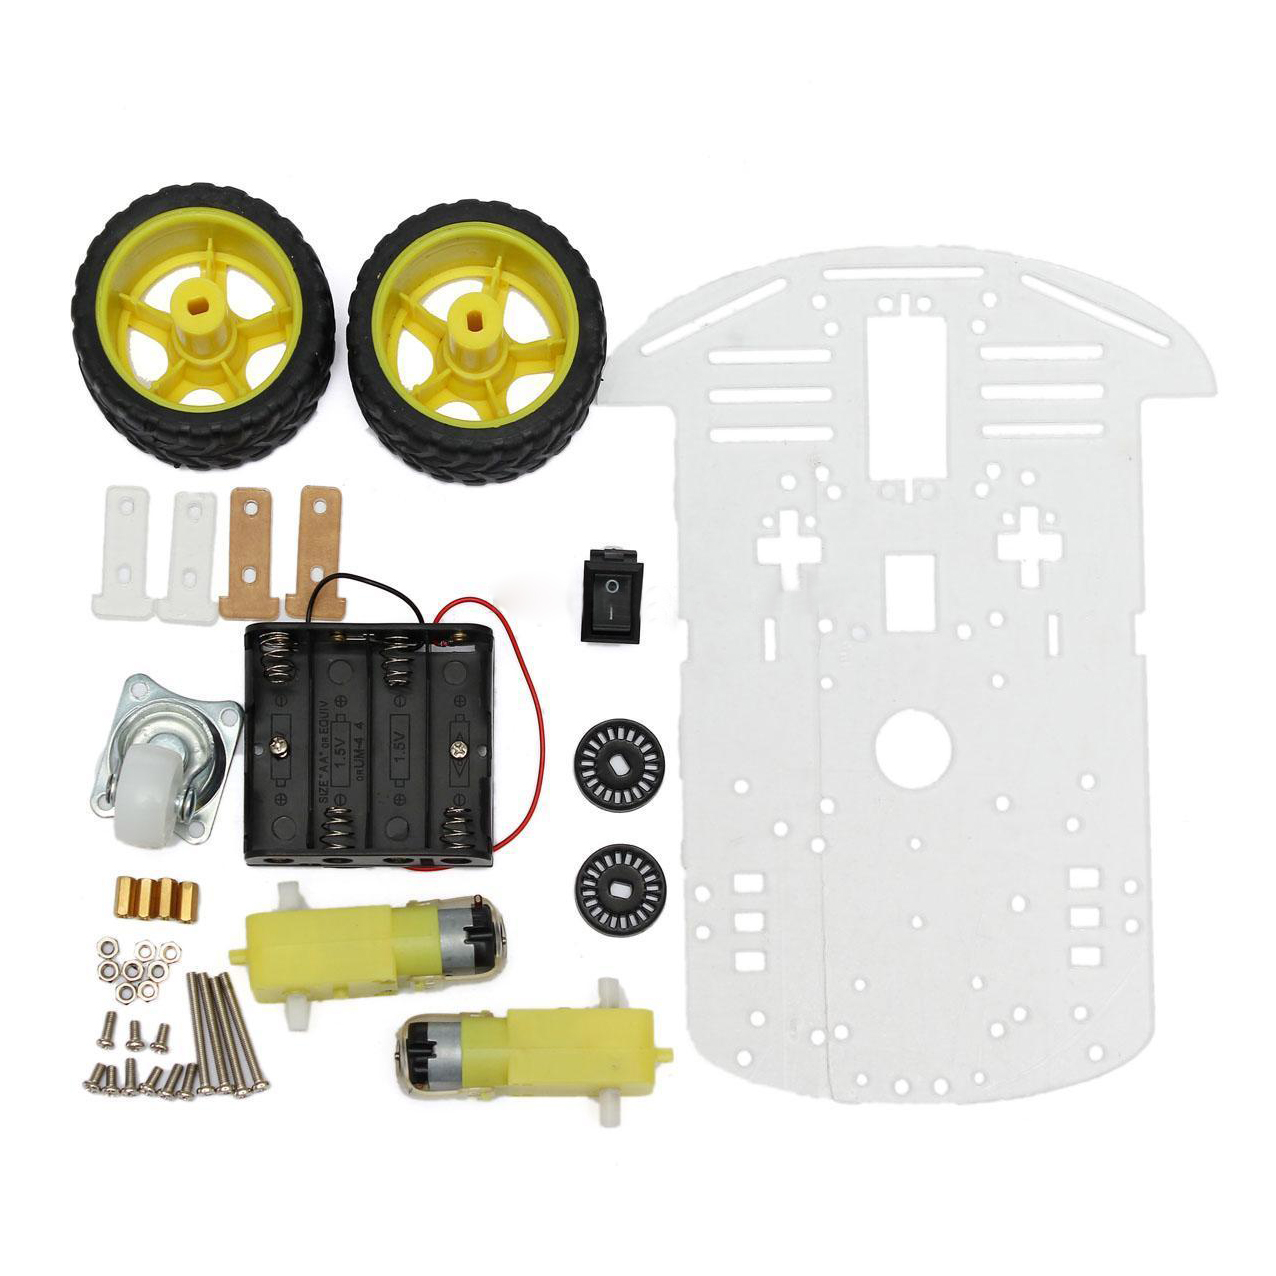 W wd smart motor robot car chassis battery box kit speed